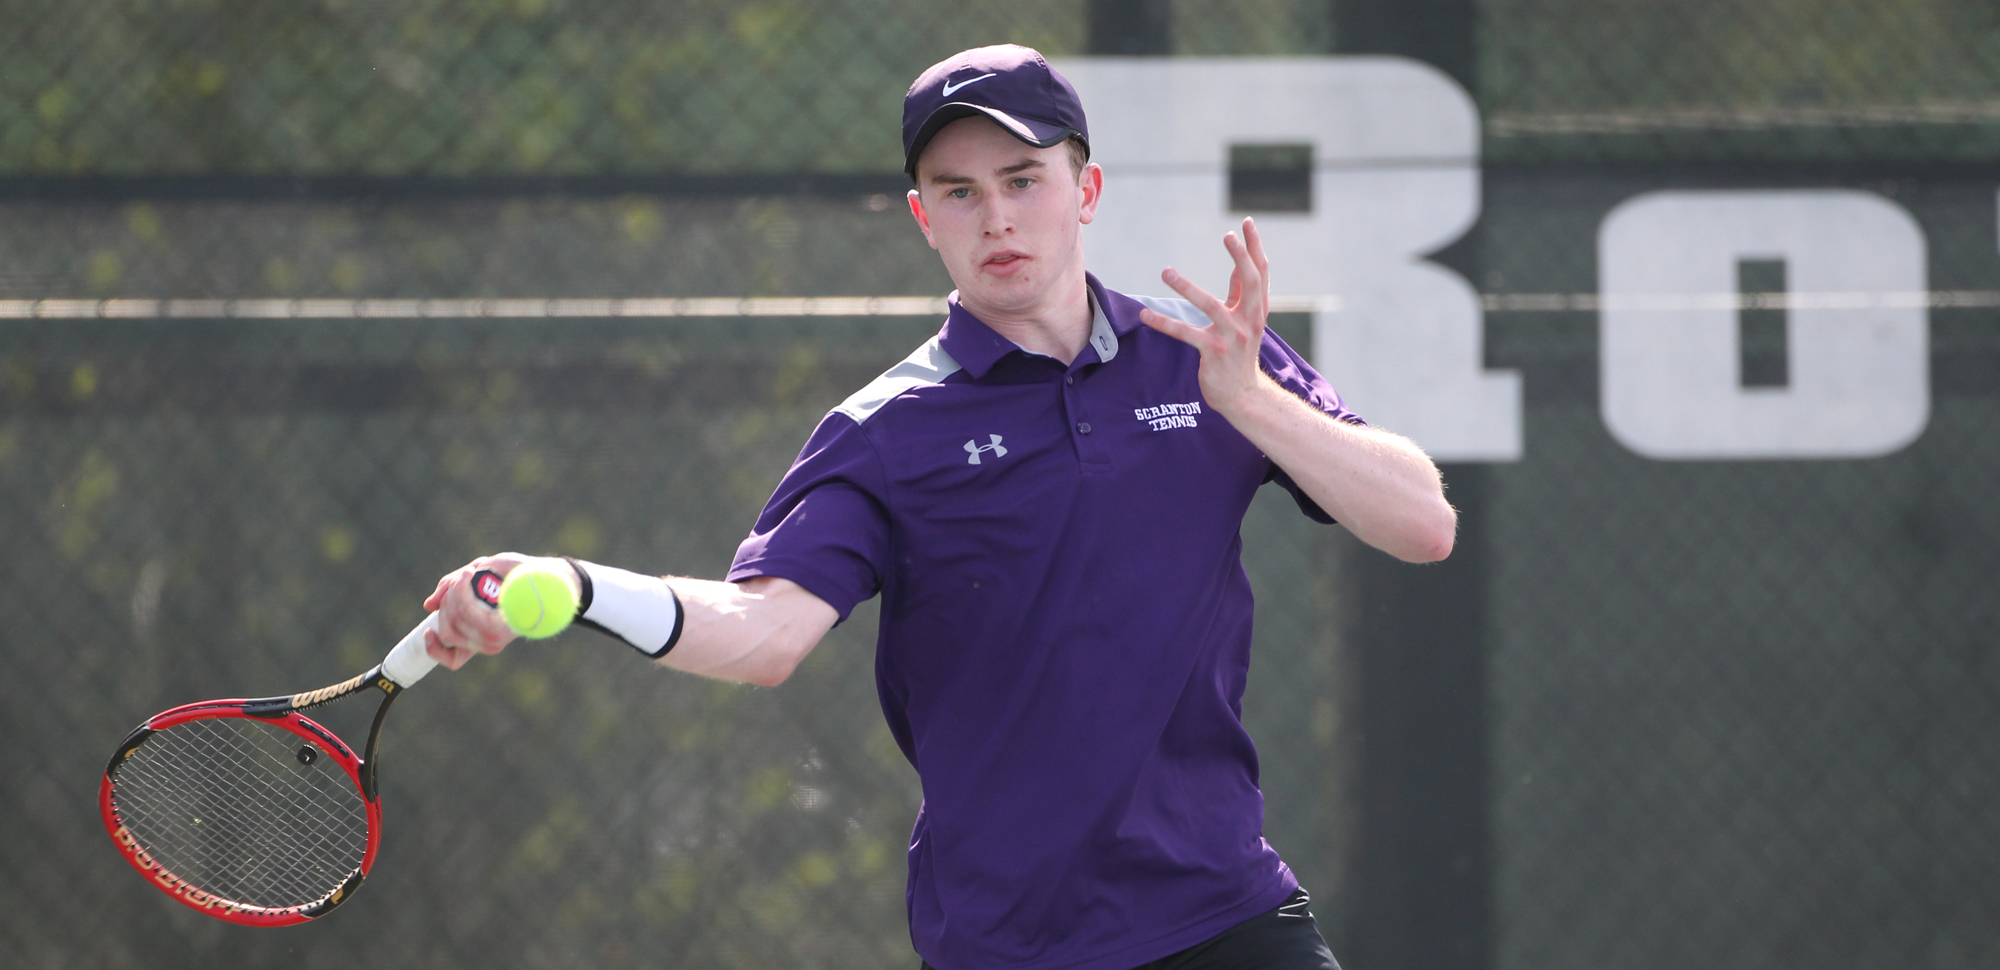 Freshman Tarquin McGurrin had wins at no. 1 doubles and no. 1 singles on Wednesday.